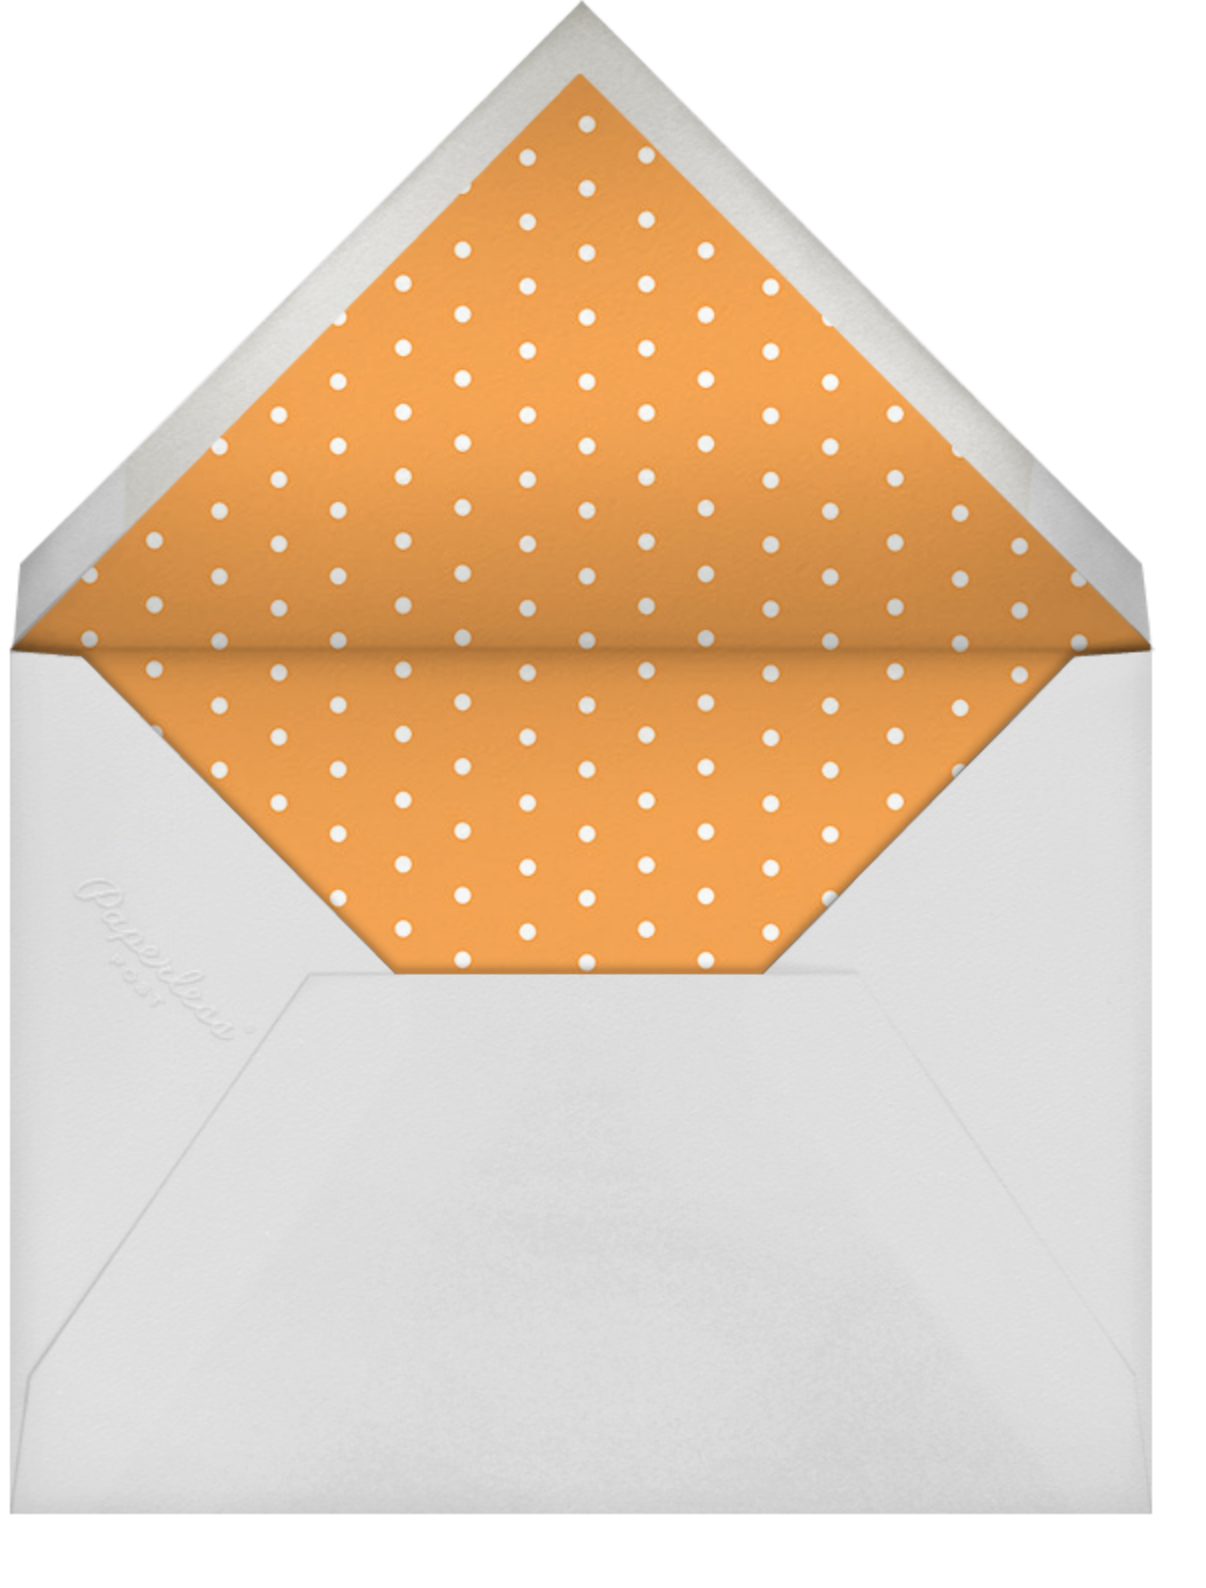 Turkey Time - Rifle Paper Co. - Rifle Paper Co.  - envelope back